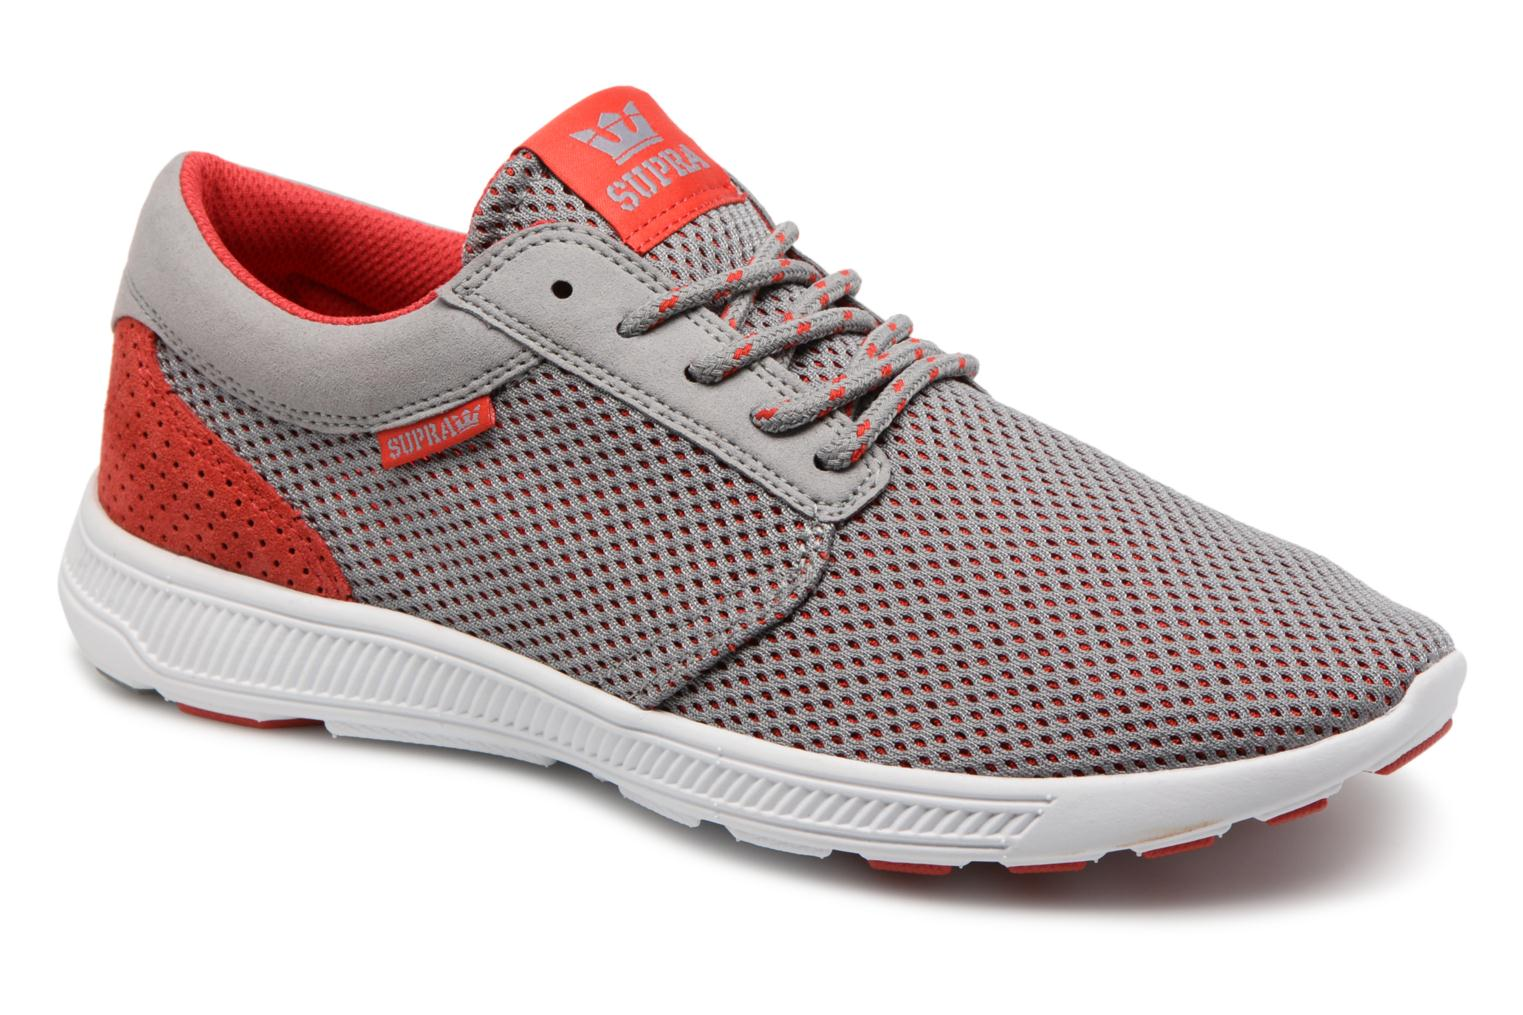 Marques Chaussure homme Supra homme Hammer Run GREY - RED-M